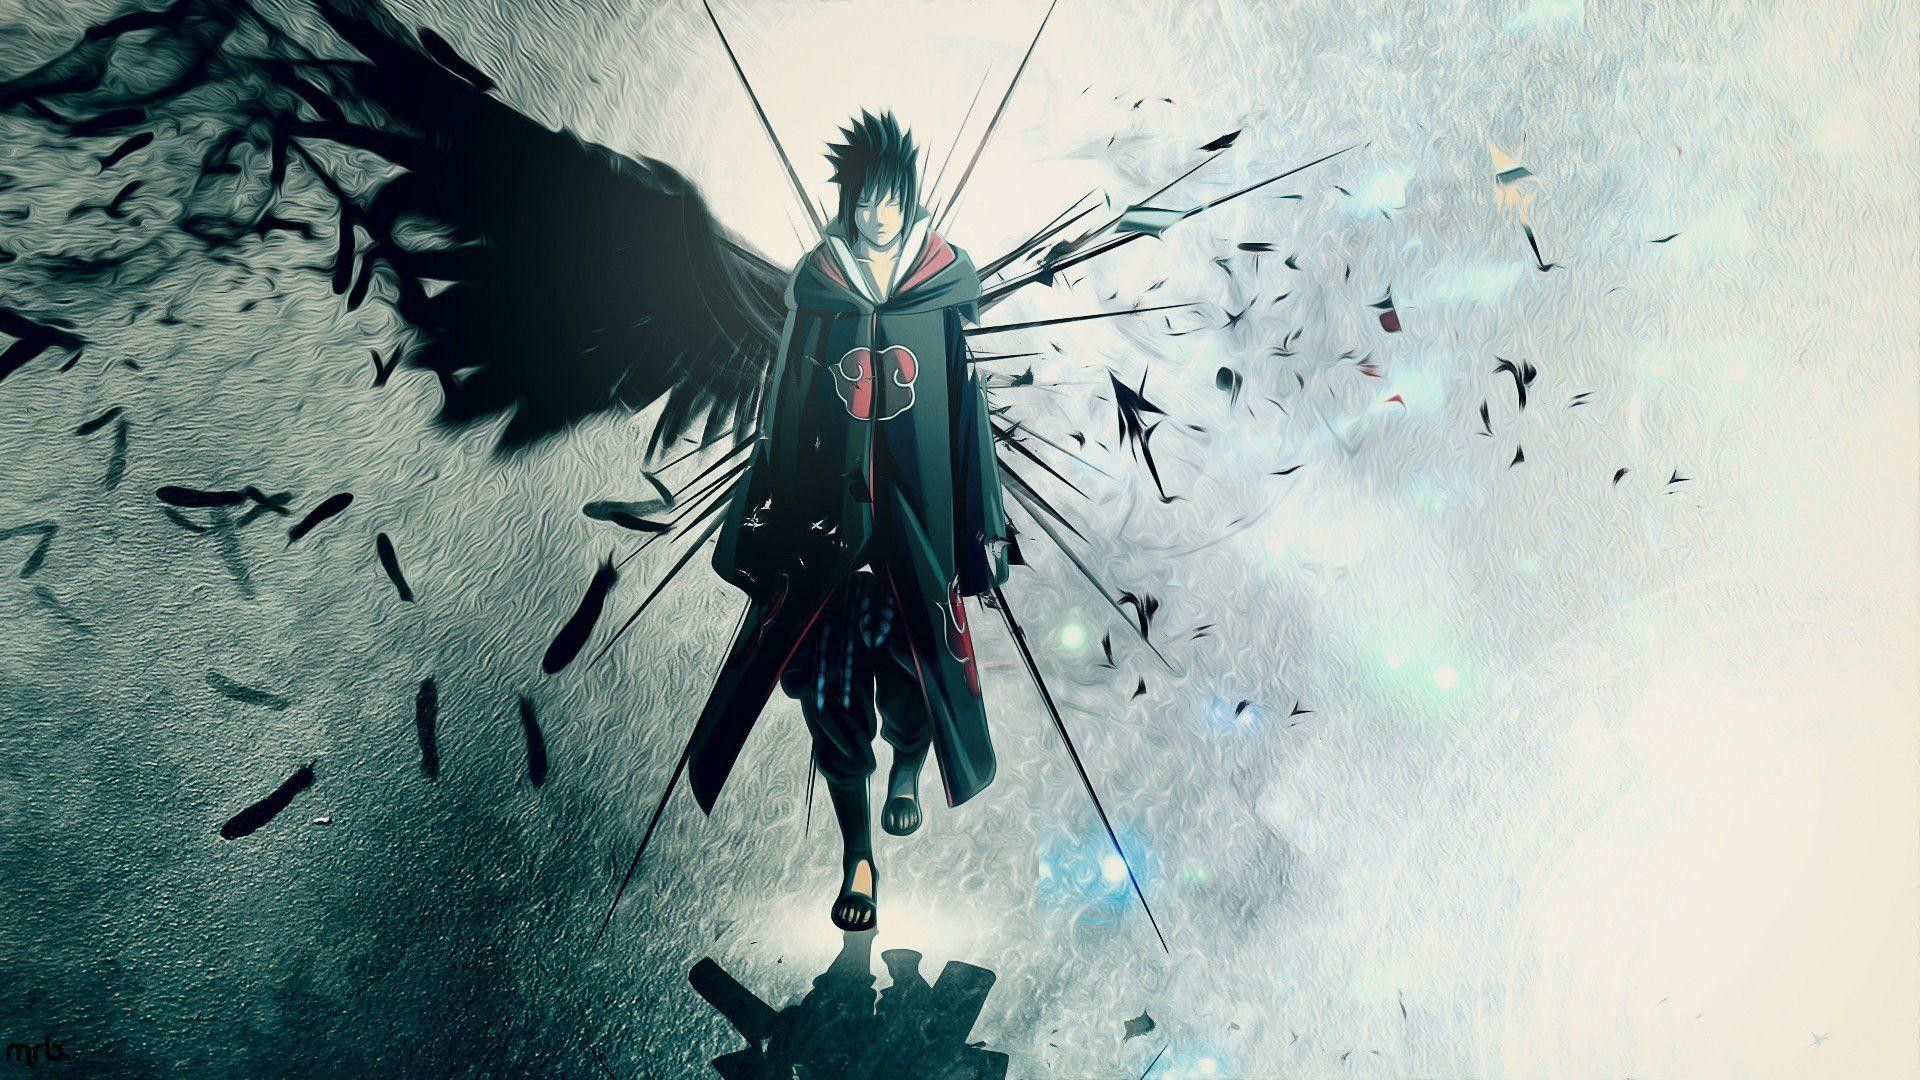 Epic Anime Picture designs For Your Desktop